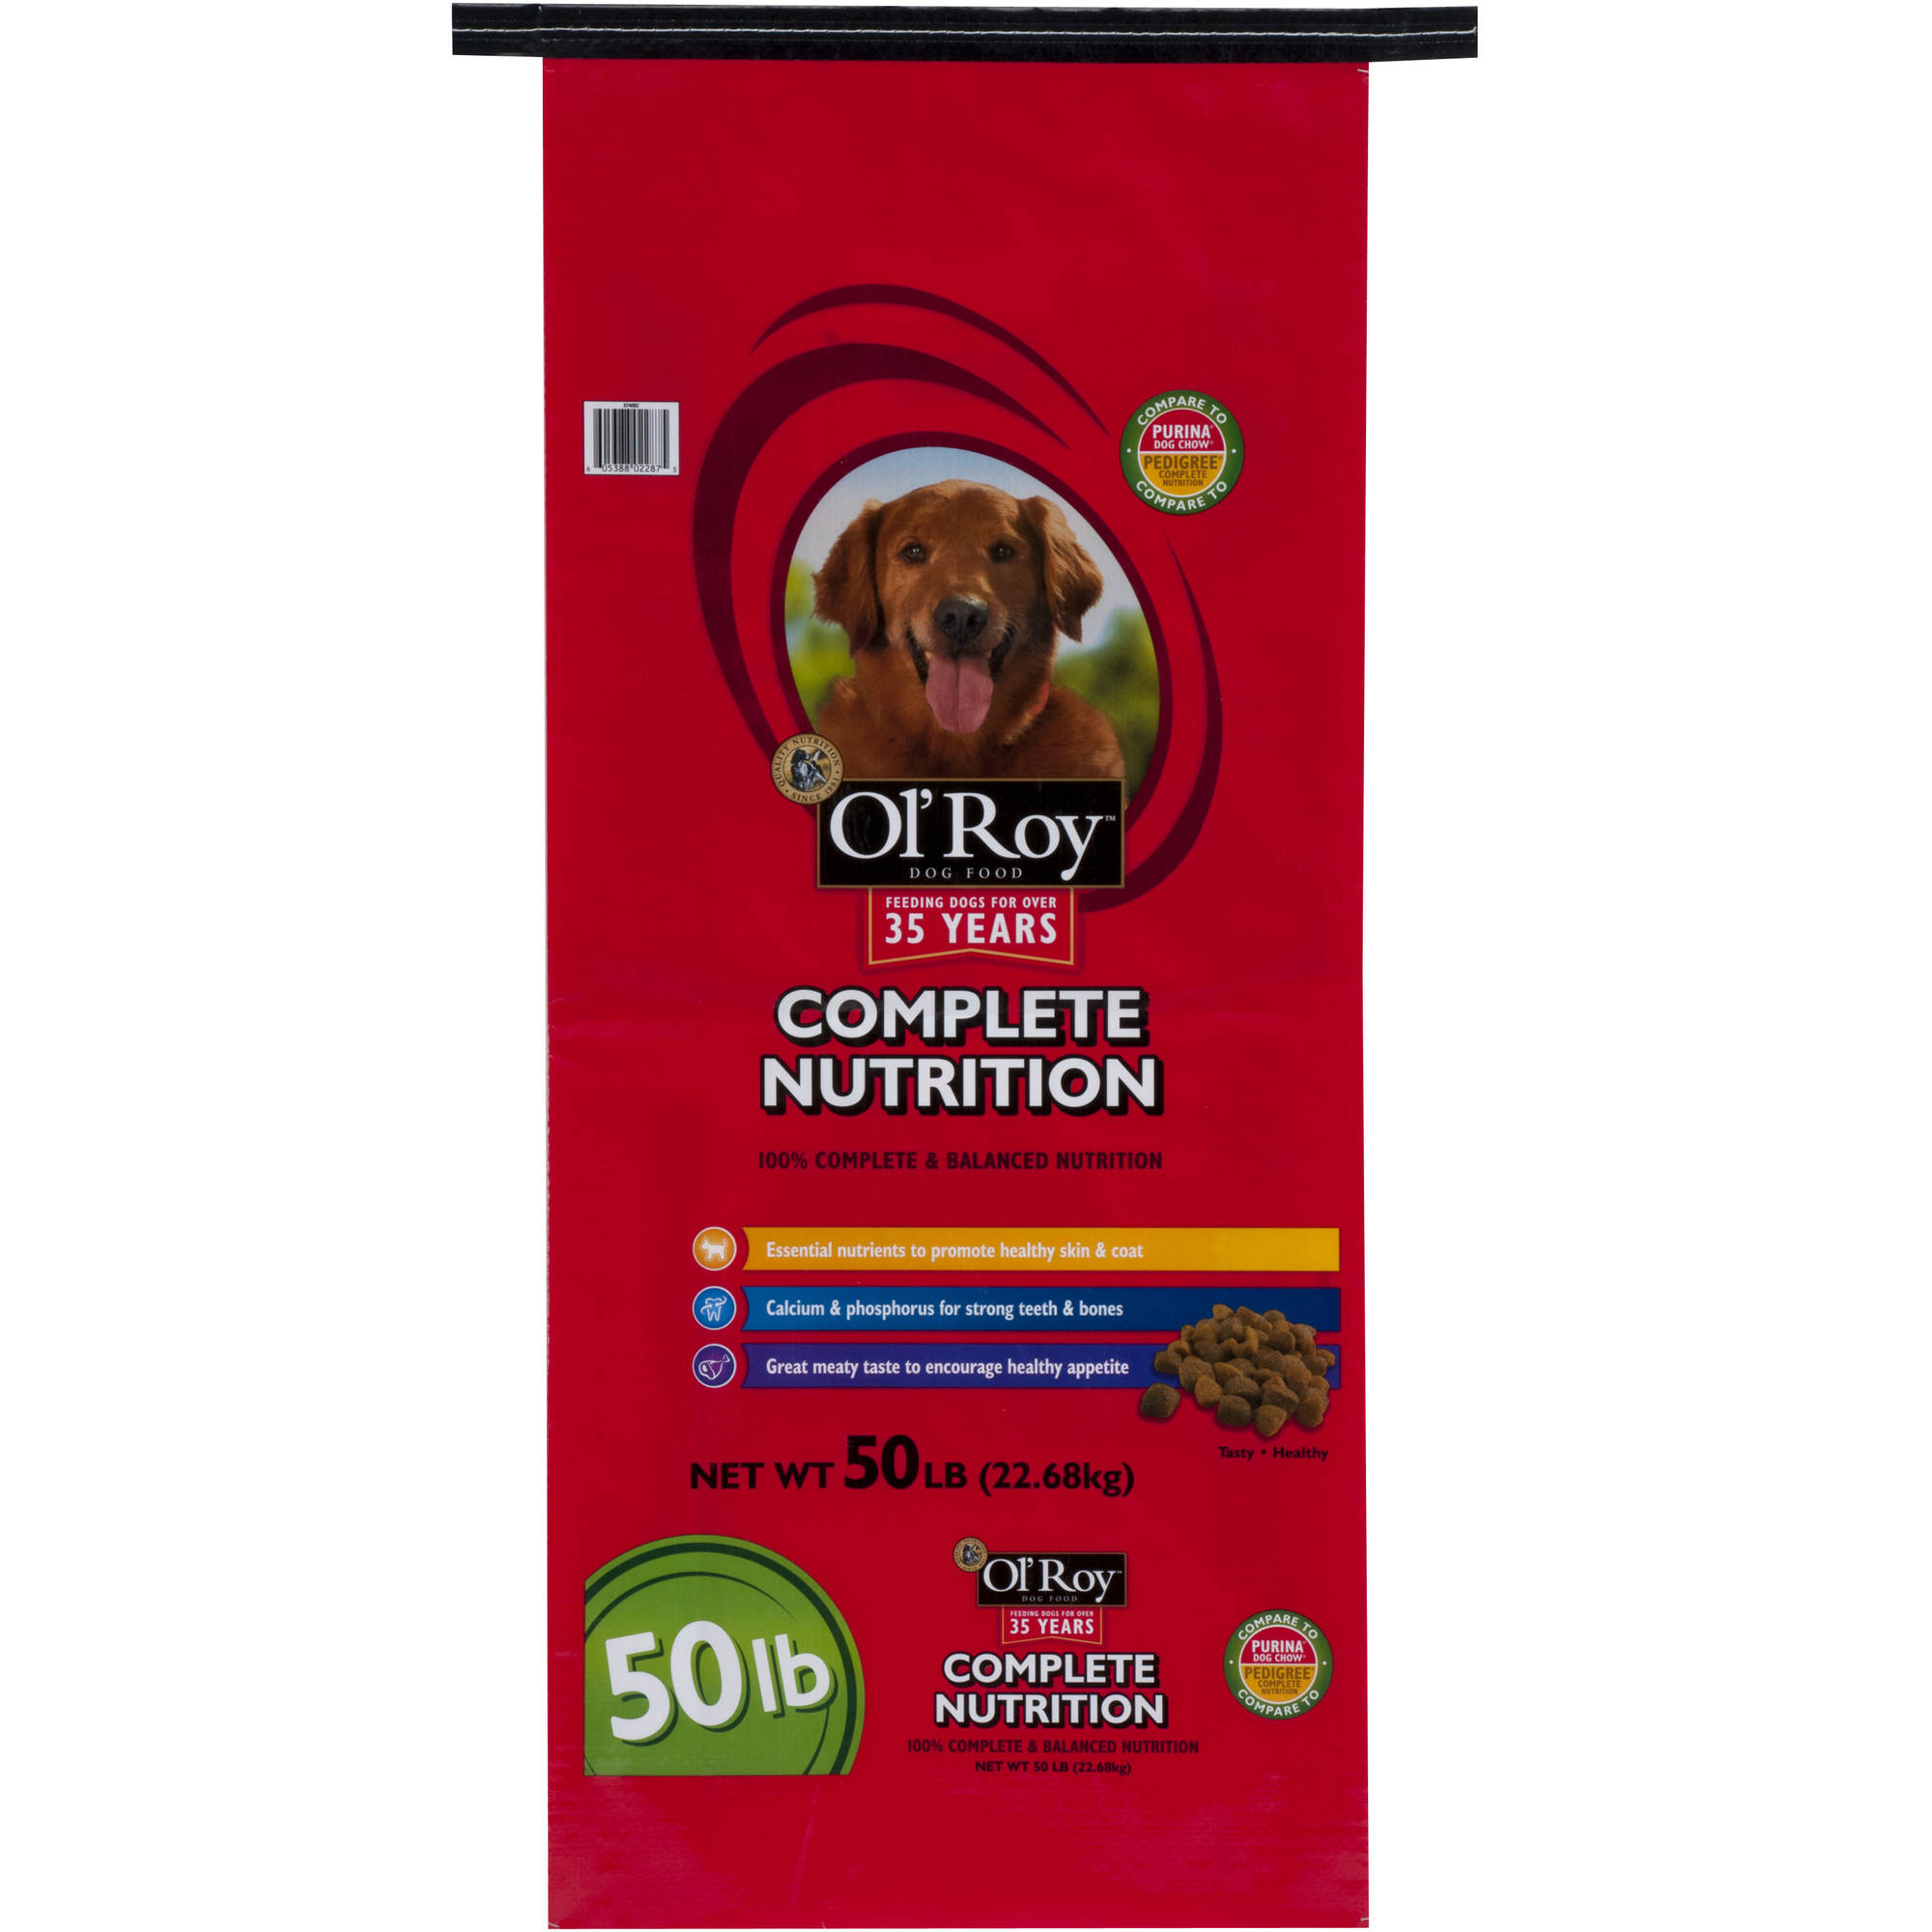 Ol' Roy Complete Nutrition Dog Food, 50 lb